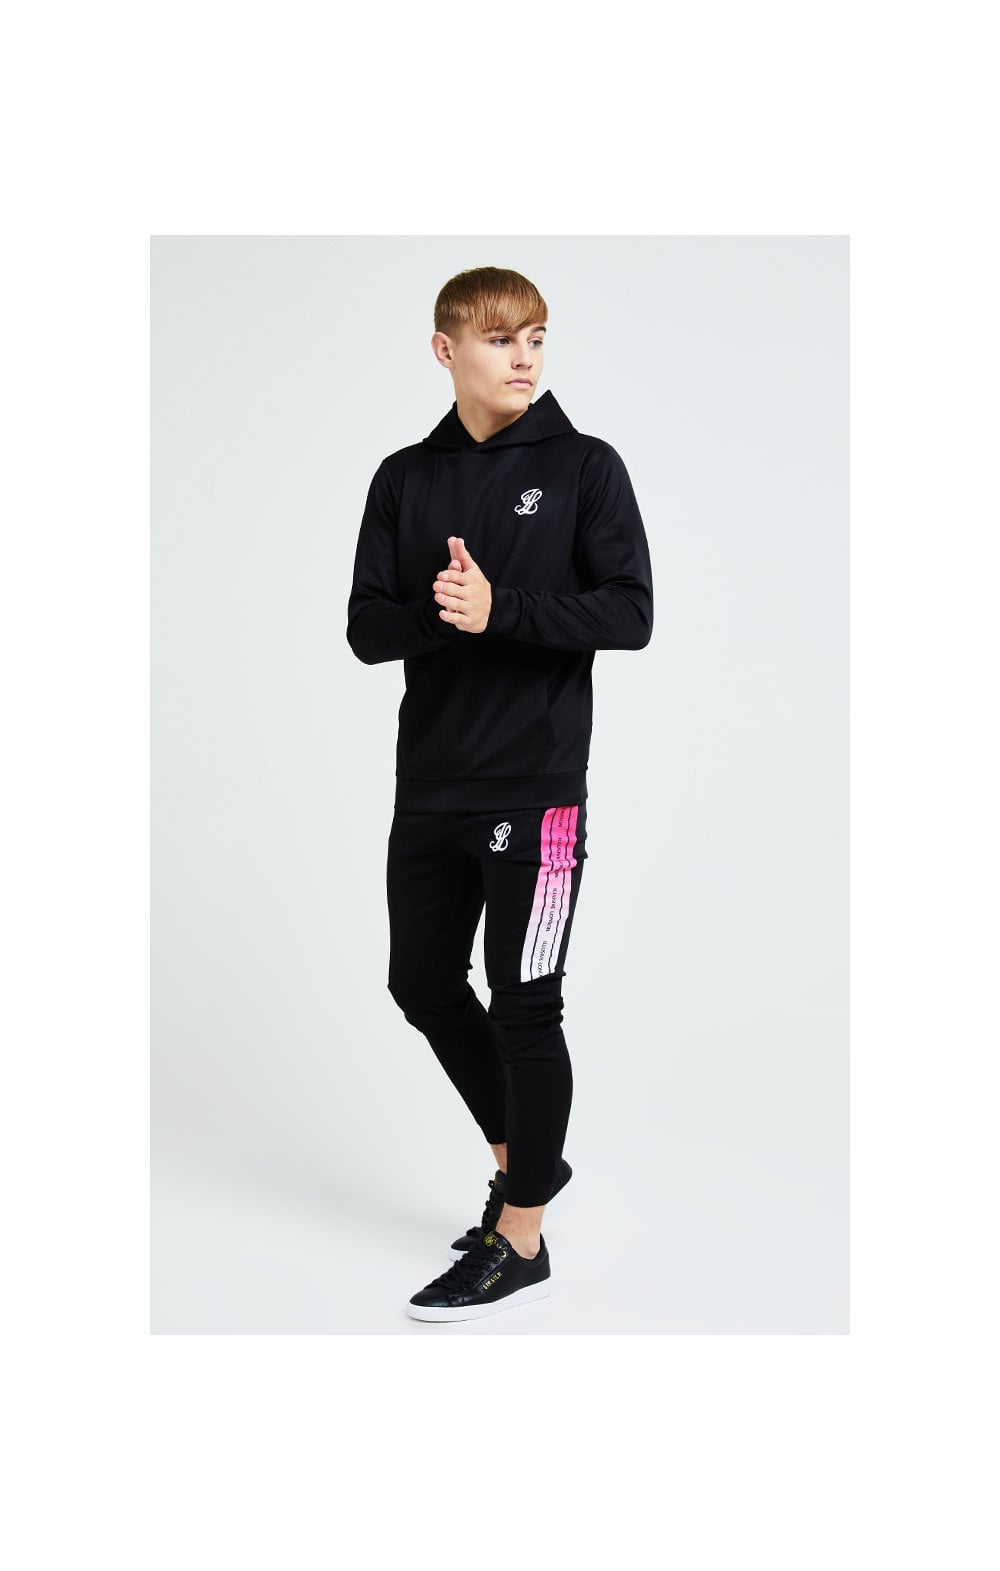 Illusive London Flux Taped Overhead Hoodie - Black & Pink (2)